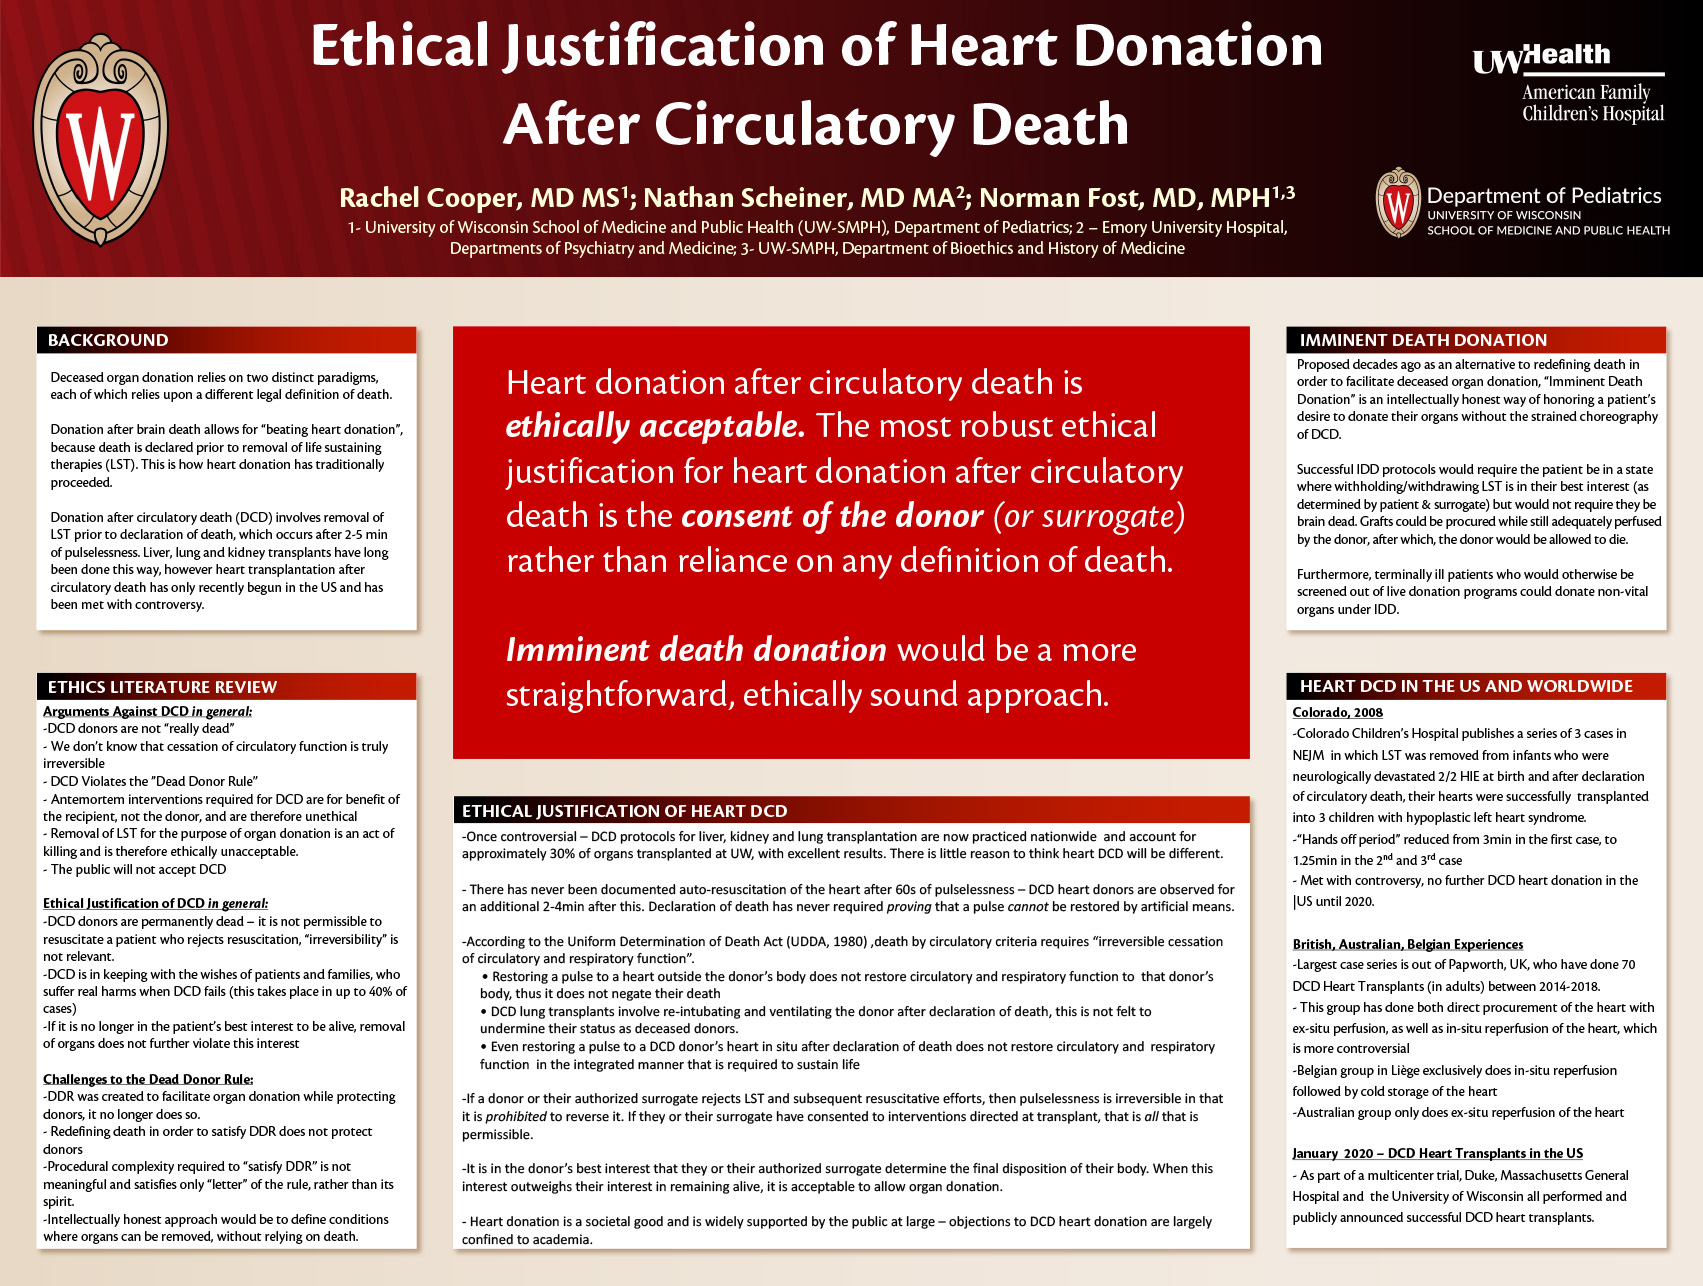 Ethical Justification of Heart Donation after Circulatory Death and Implications for the Future of Organ Transplantation poster image